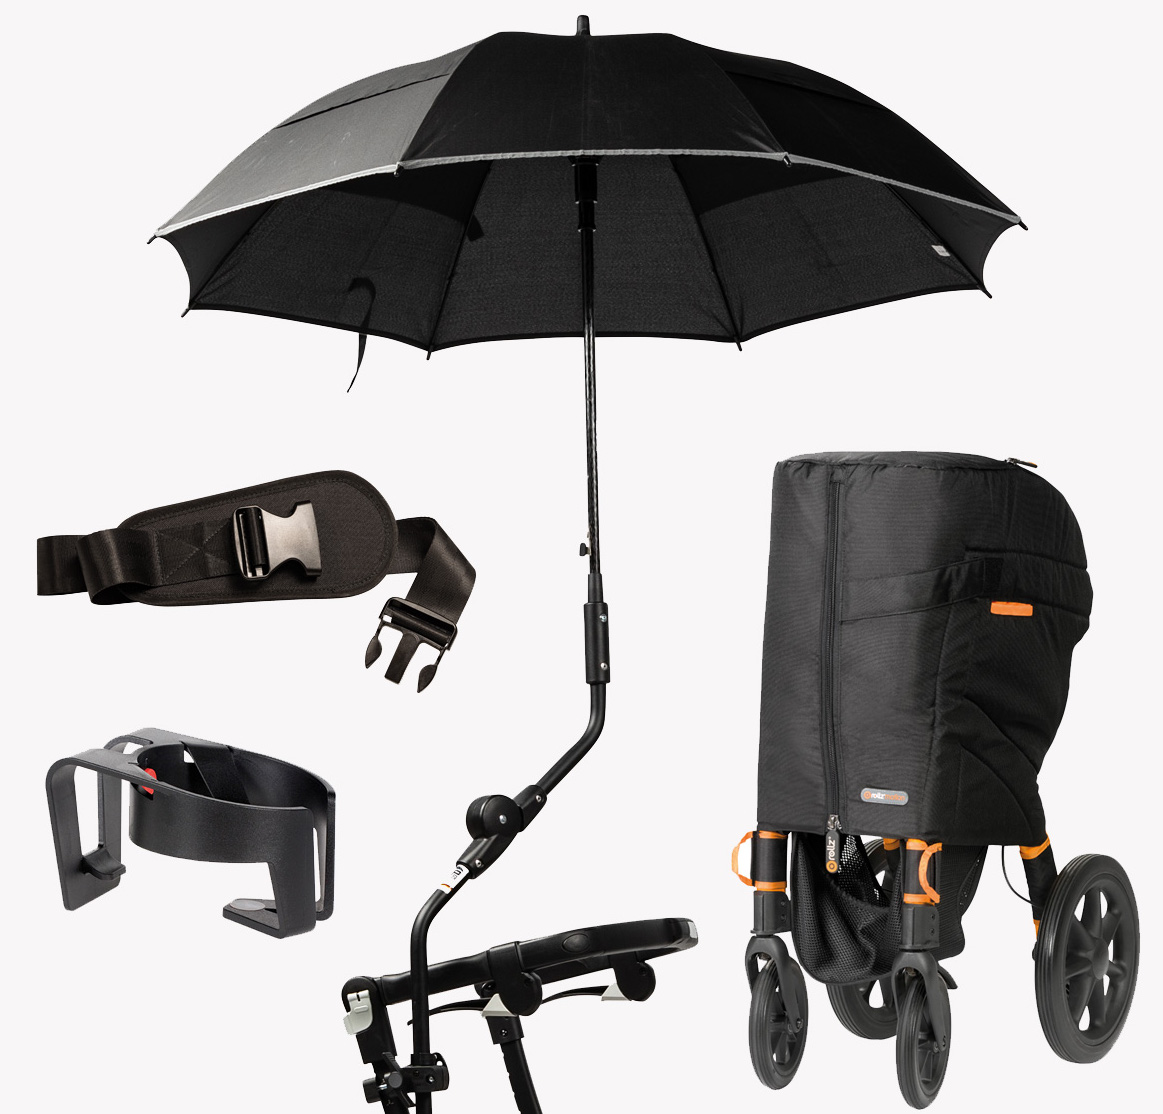 Accessories for the Rollz rollators